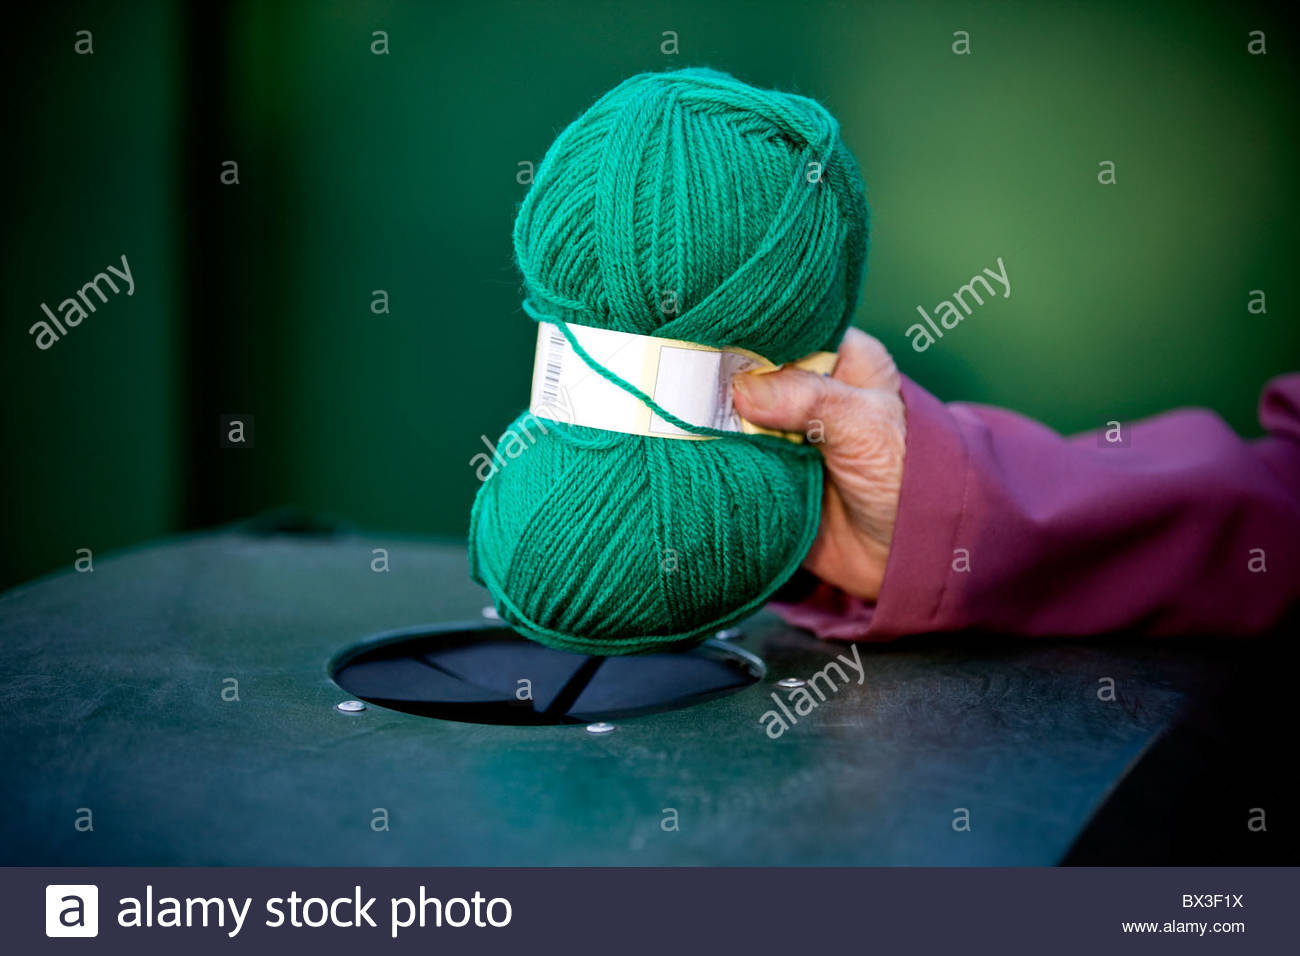 A senior woman recycling a ball of wool Stock Photo